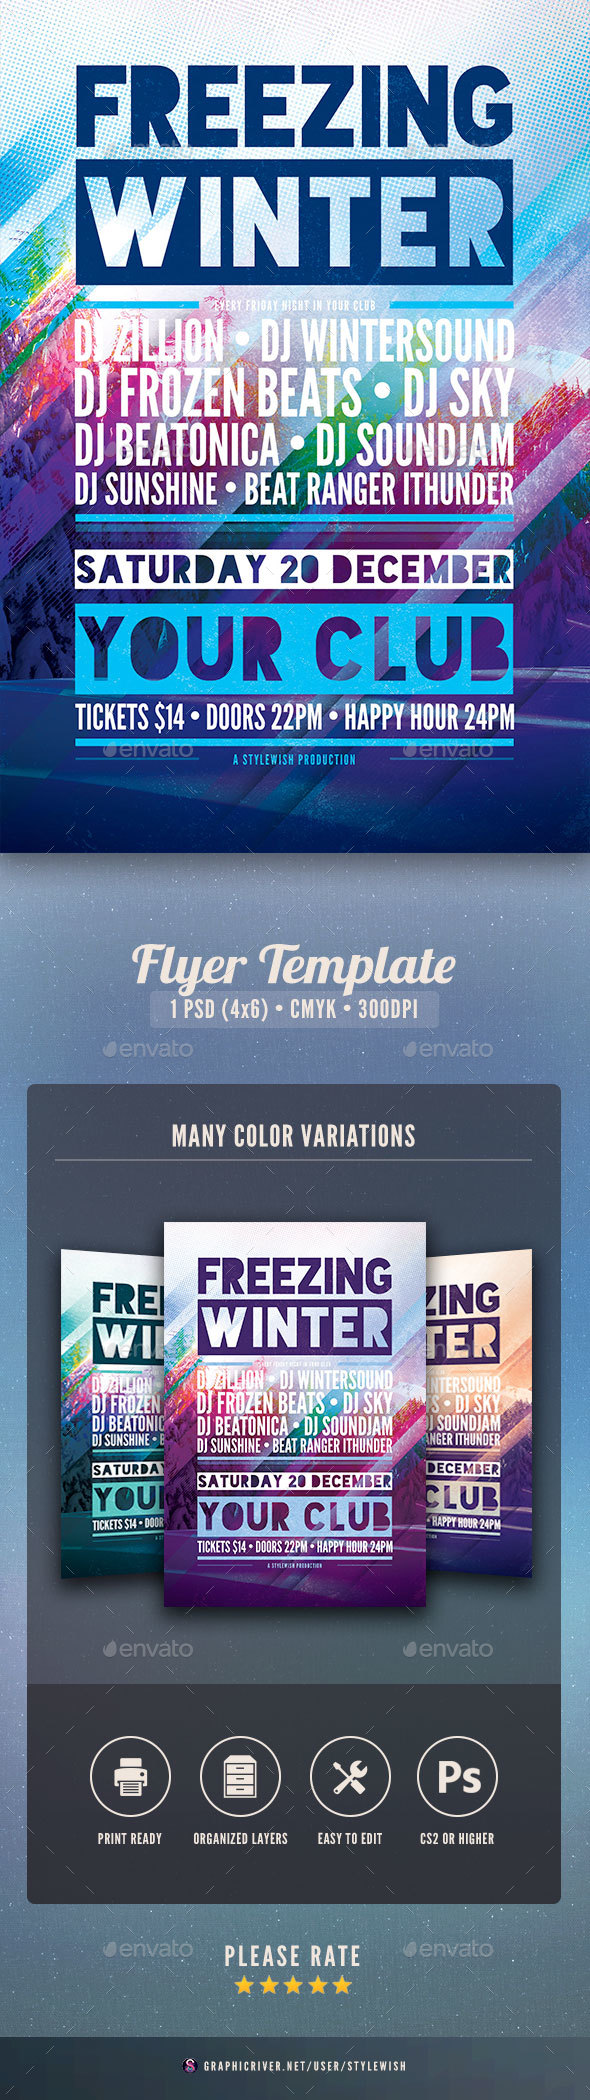 Freezing Winter Flyer - Clubs & Parties Events